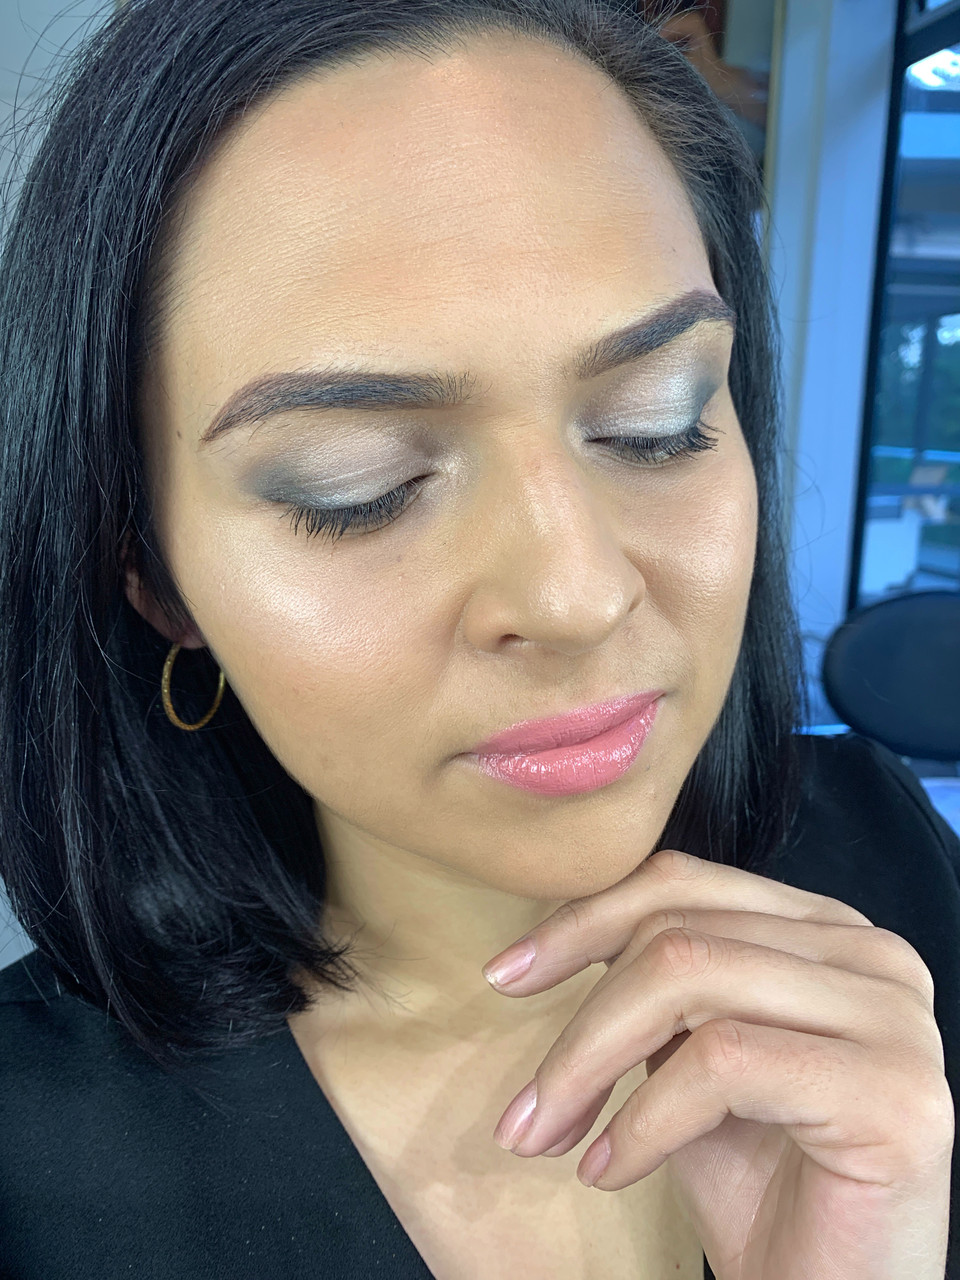 Friday glam session:  Black eyeshadow made easy